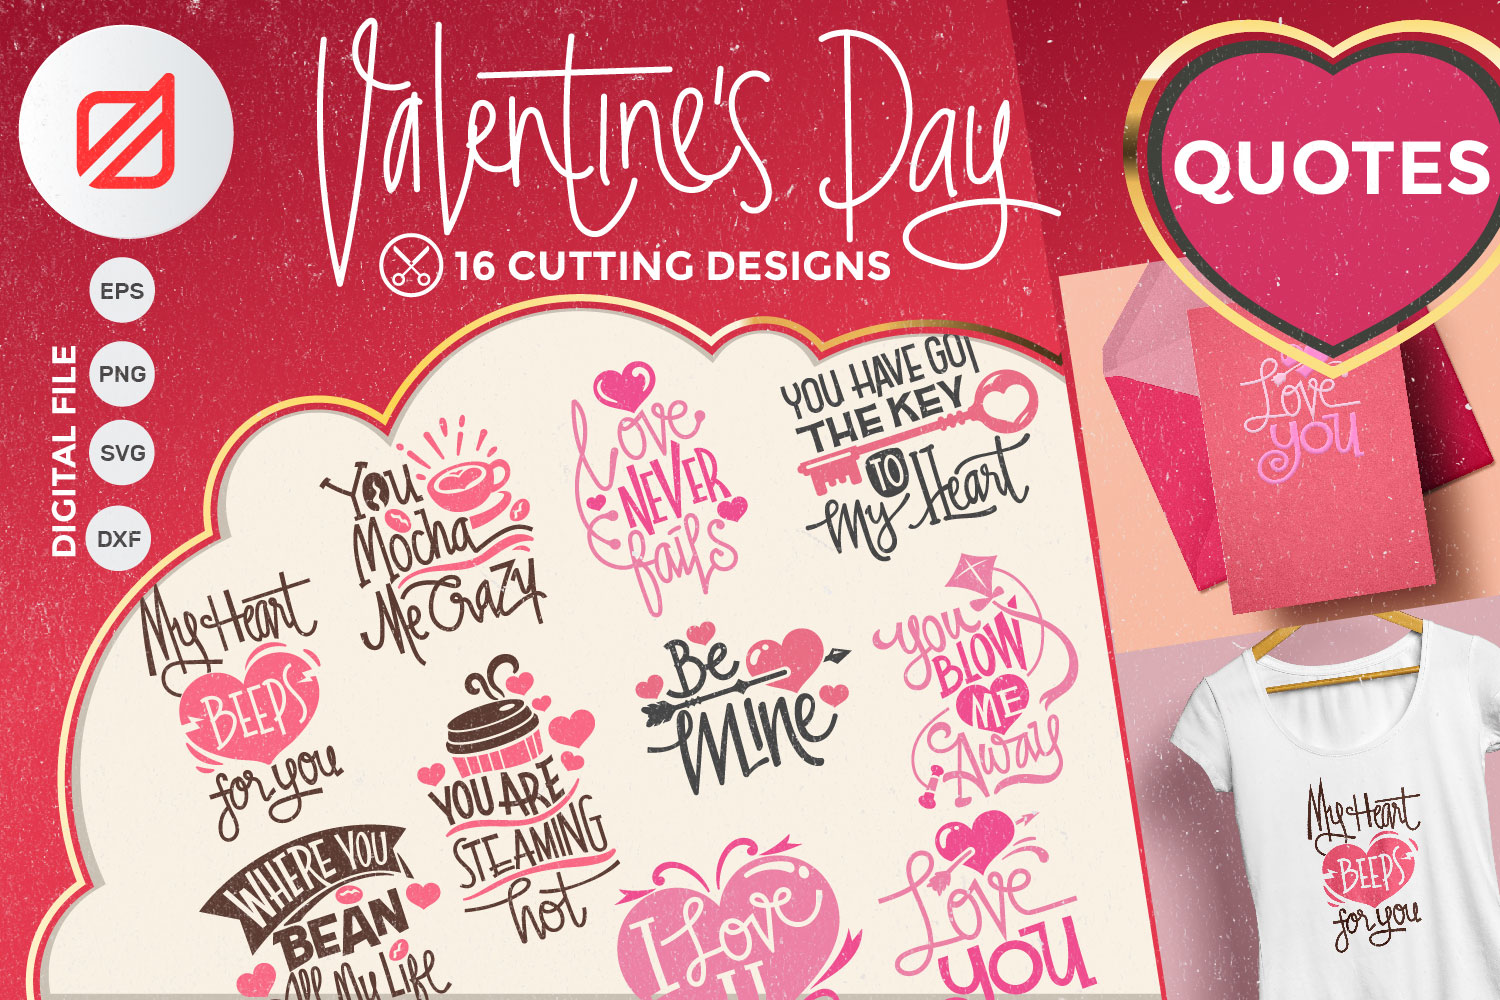 Valentine's Day Quotes Collection Cutting File example image 1